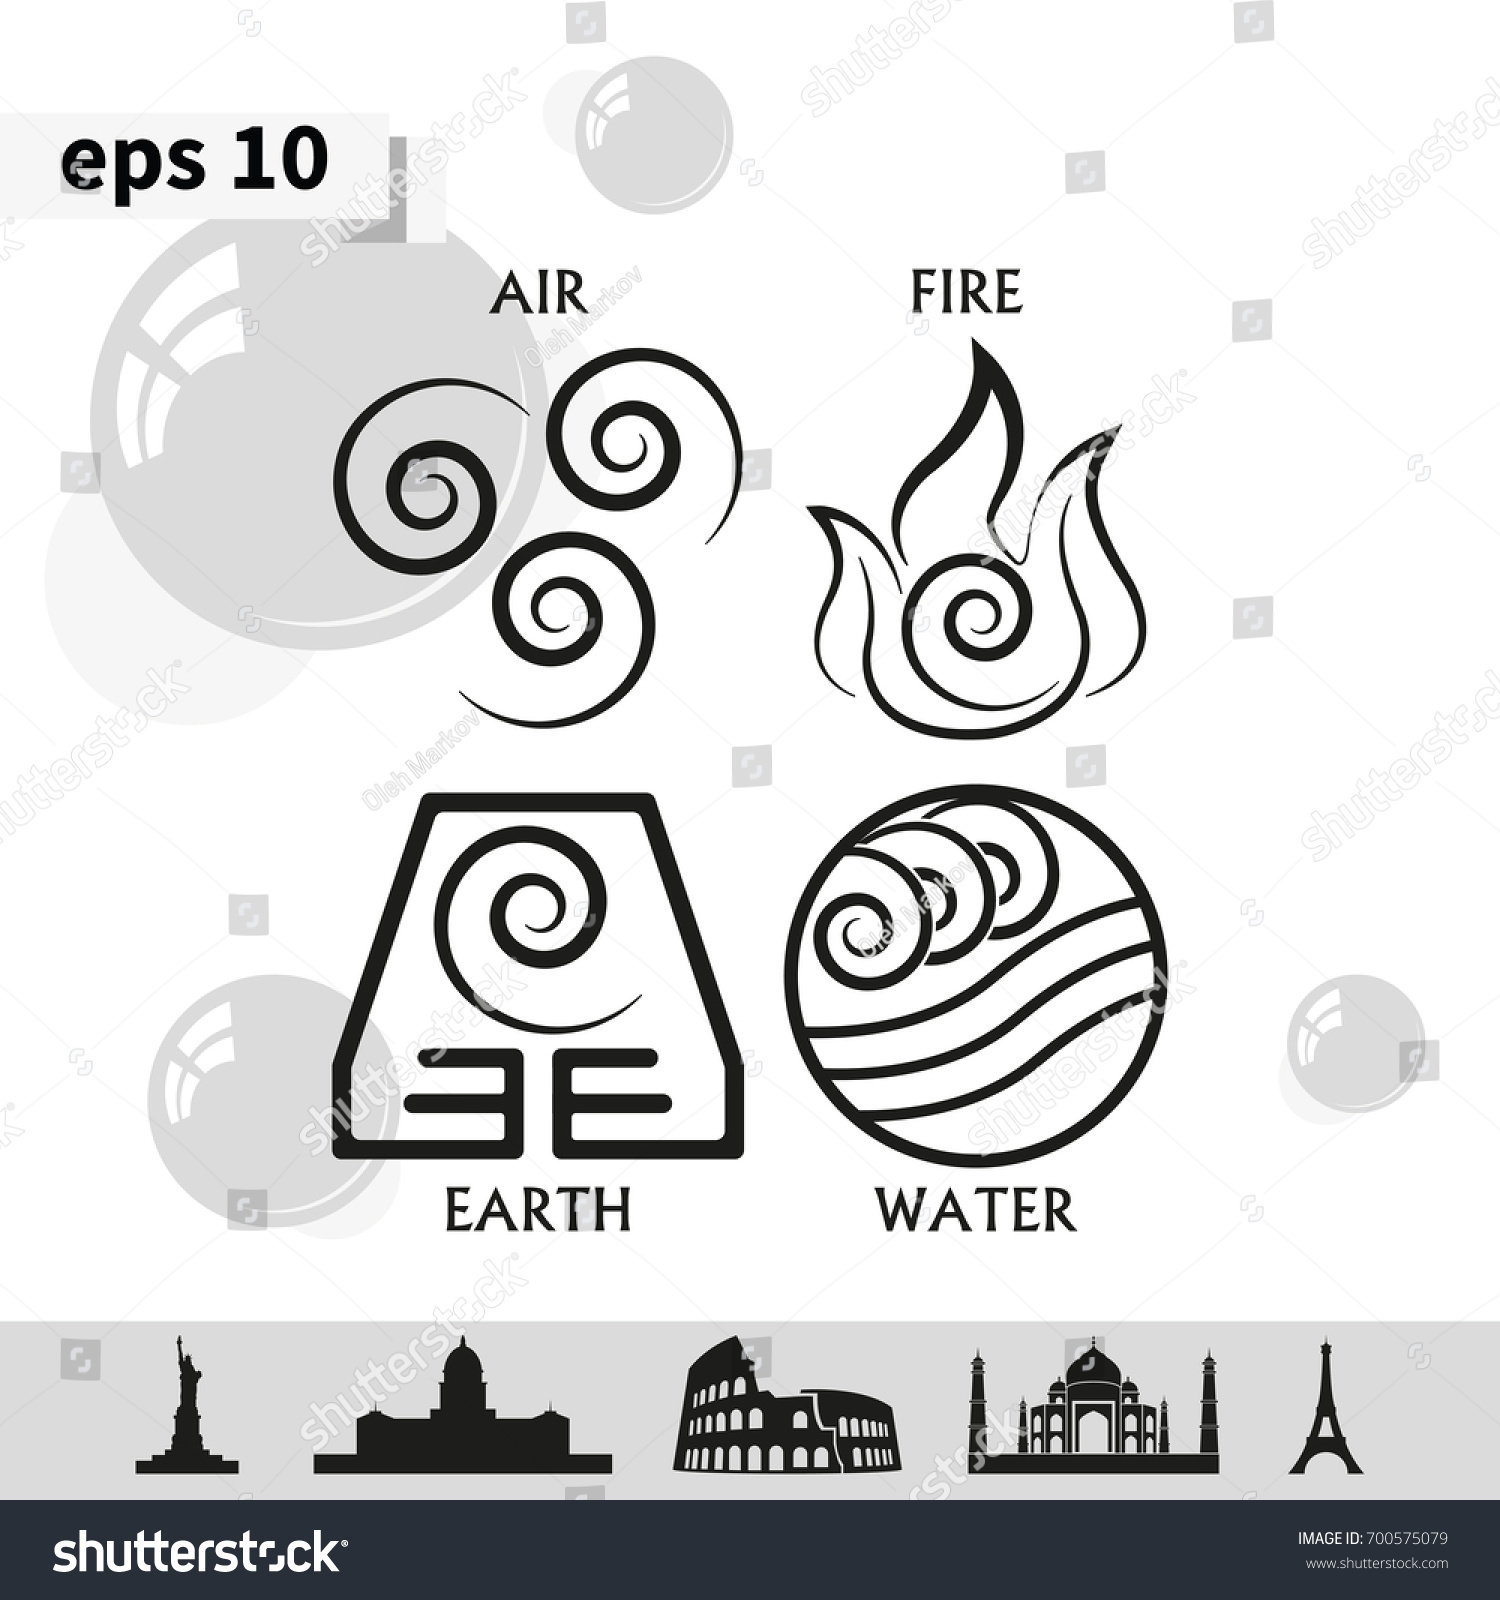 Ancient energy symbols gallery symbol and sign ideas ancient symbols four elements subscribe stock vector 700575079 ancient symbols of four elements with subscribe buycottarizona buycottarizona